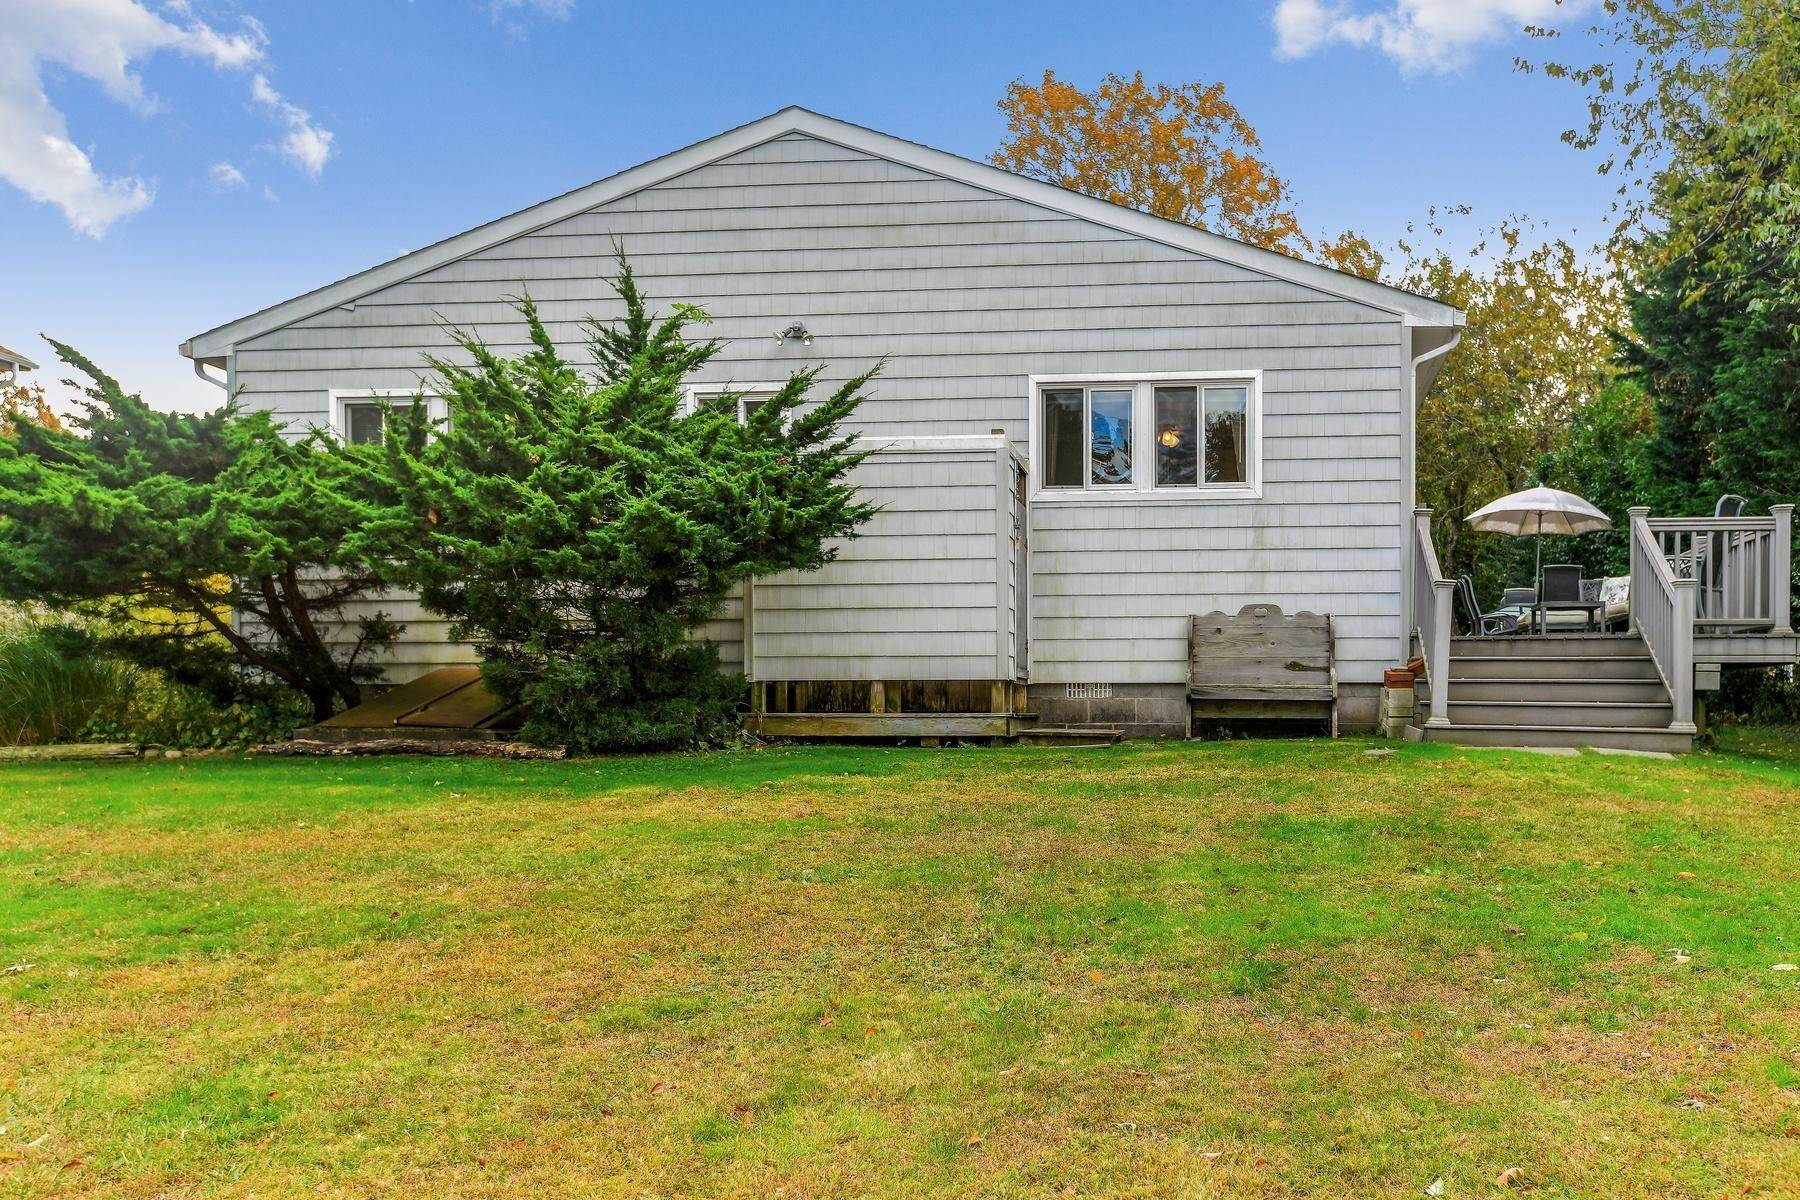 12. Single Family Home at Montauk Beach House Rental Montauk, NY 11954